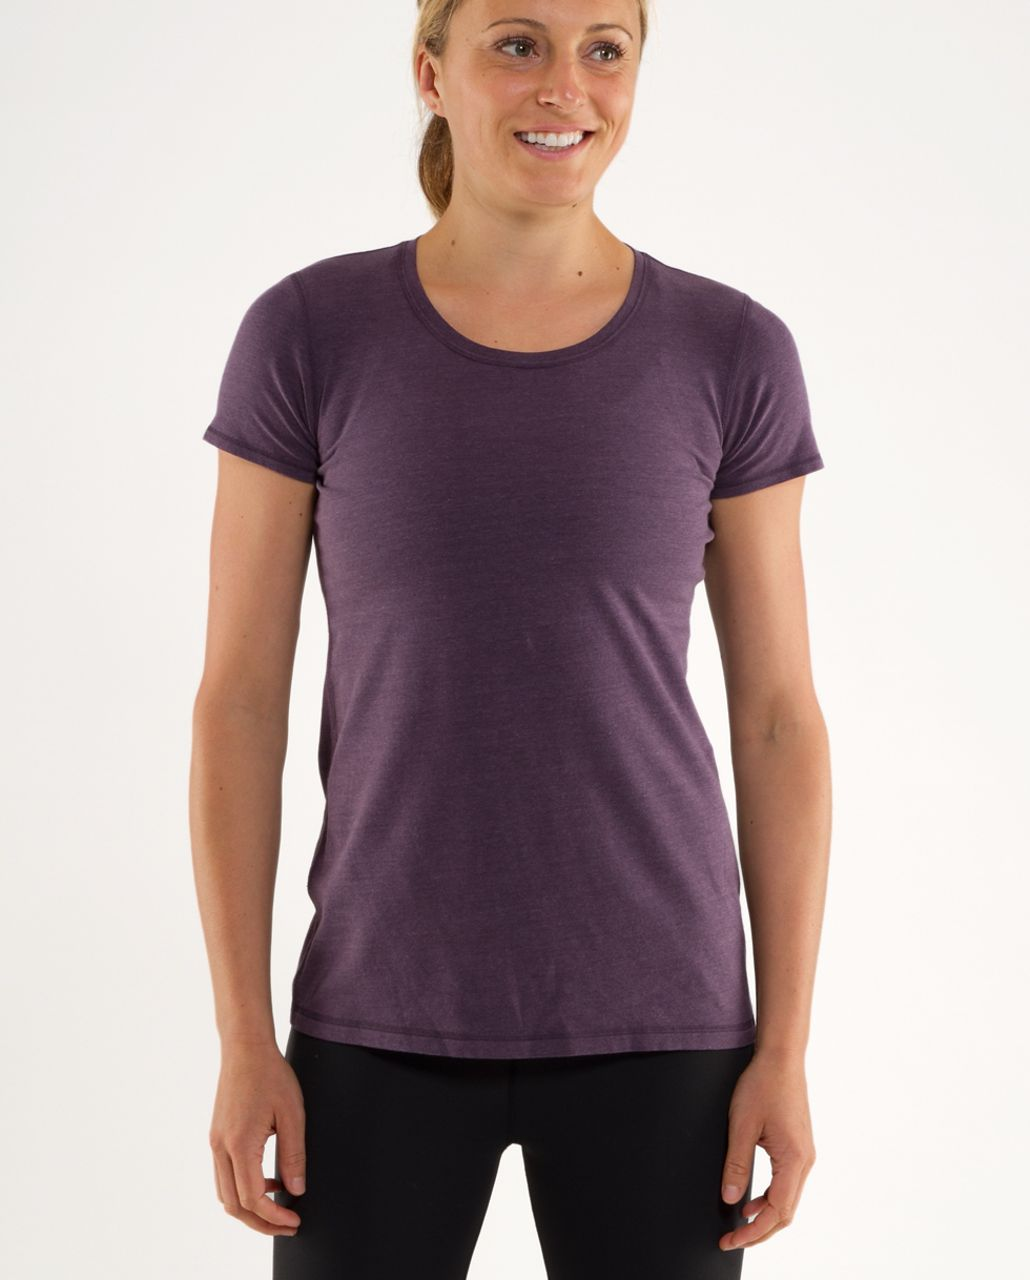 Lululemon Lively Crewneck Tee *Vitasea - Heathered Black Swan